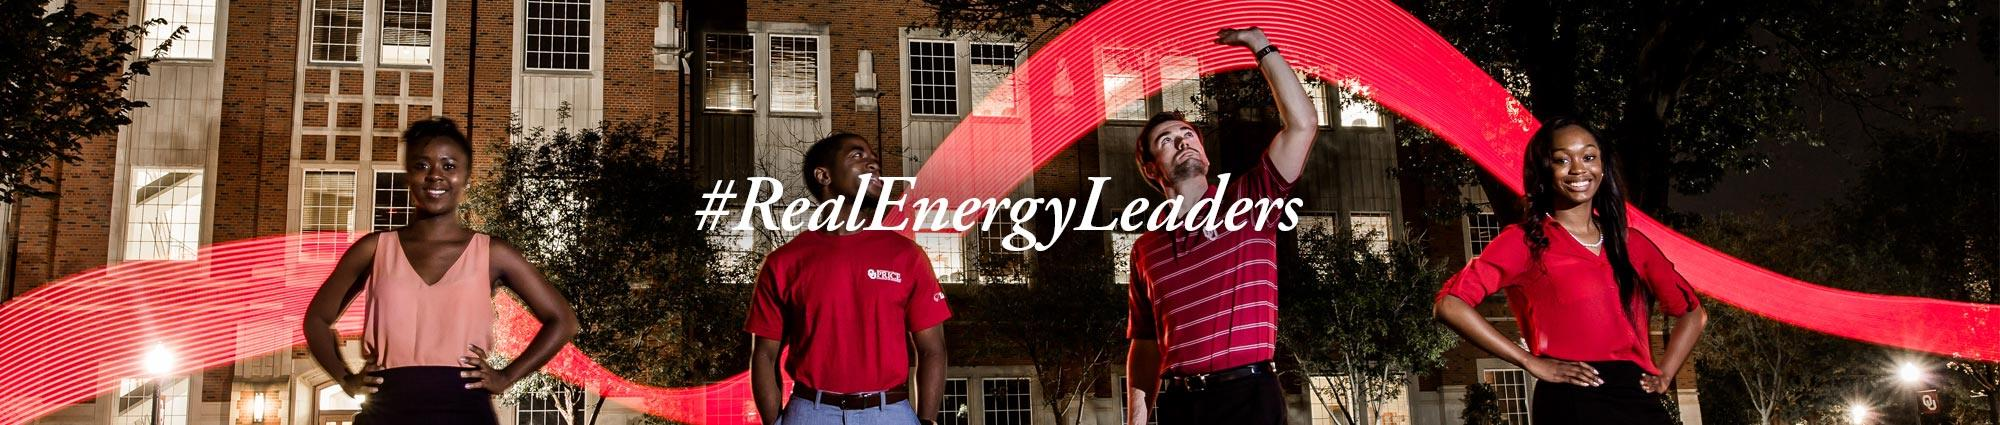 Price Students #RealEnergyLeaders